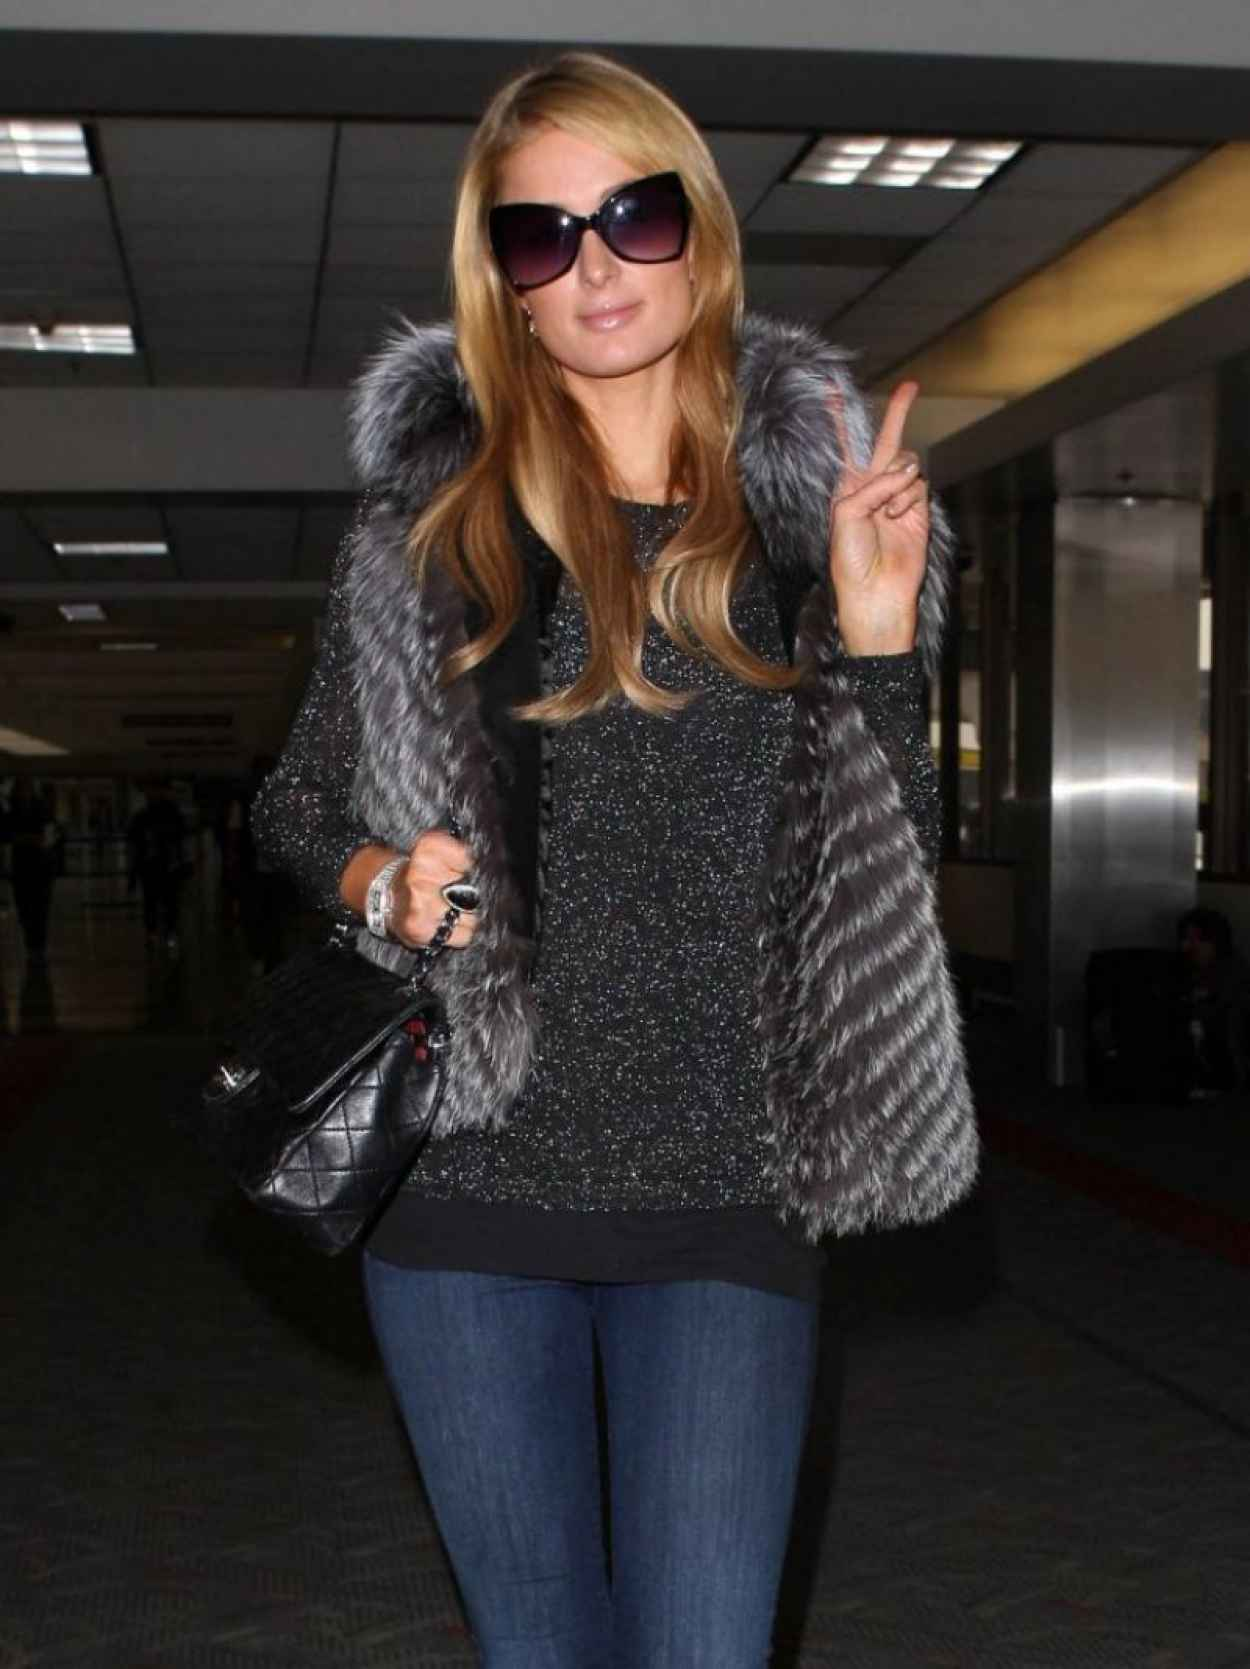 Paris Hilton in Jeans - LAX Airport - January 2015-1